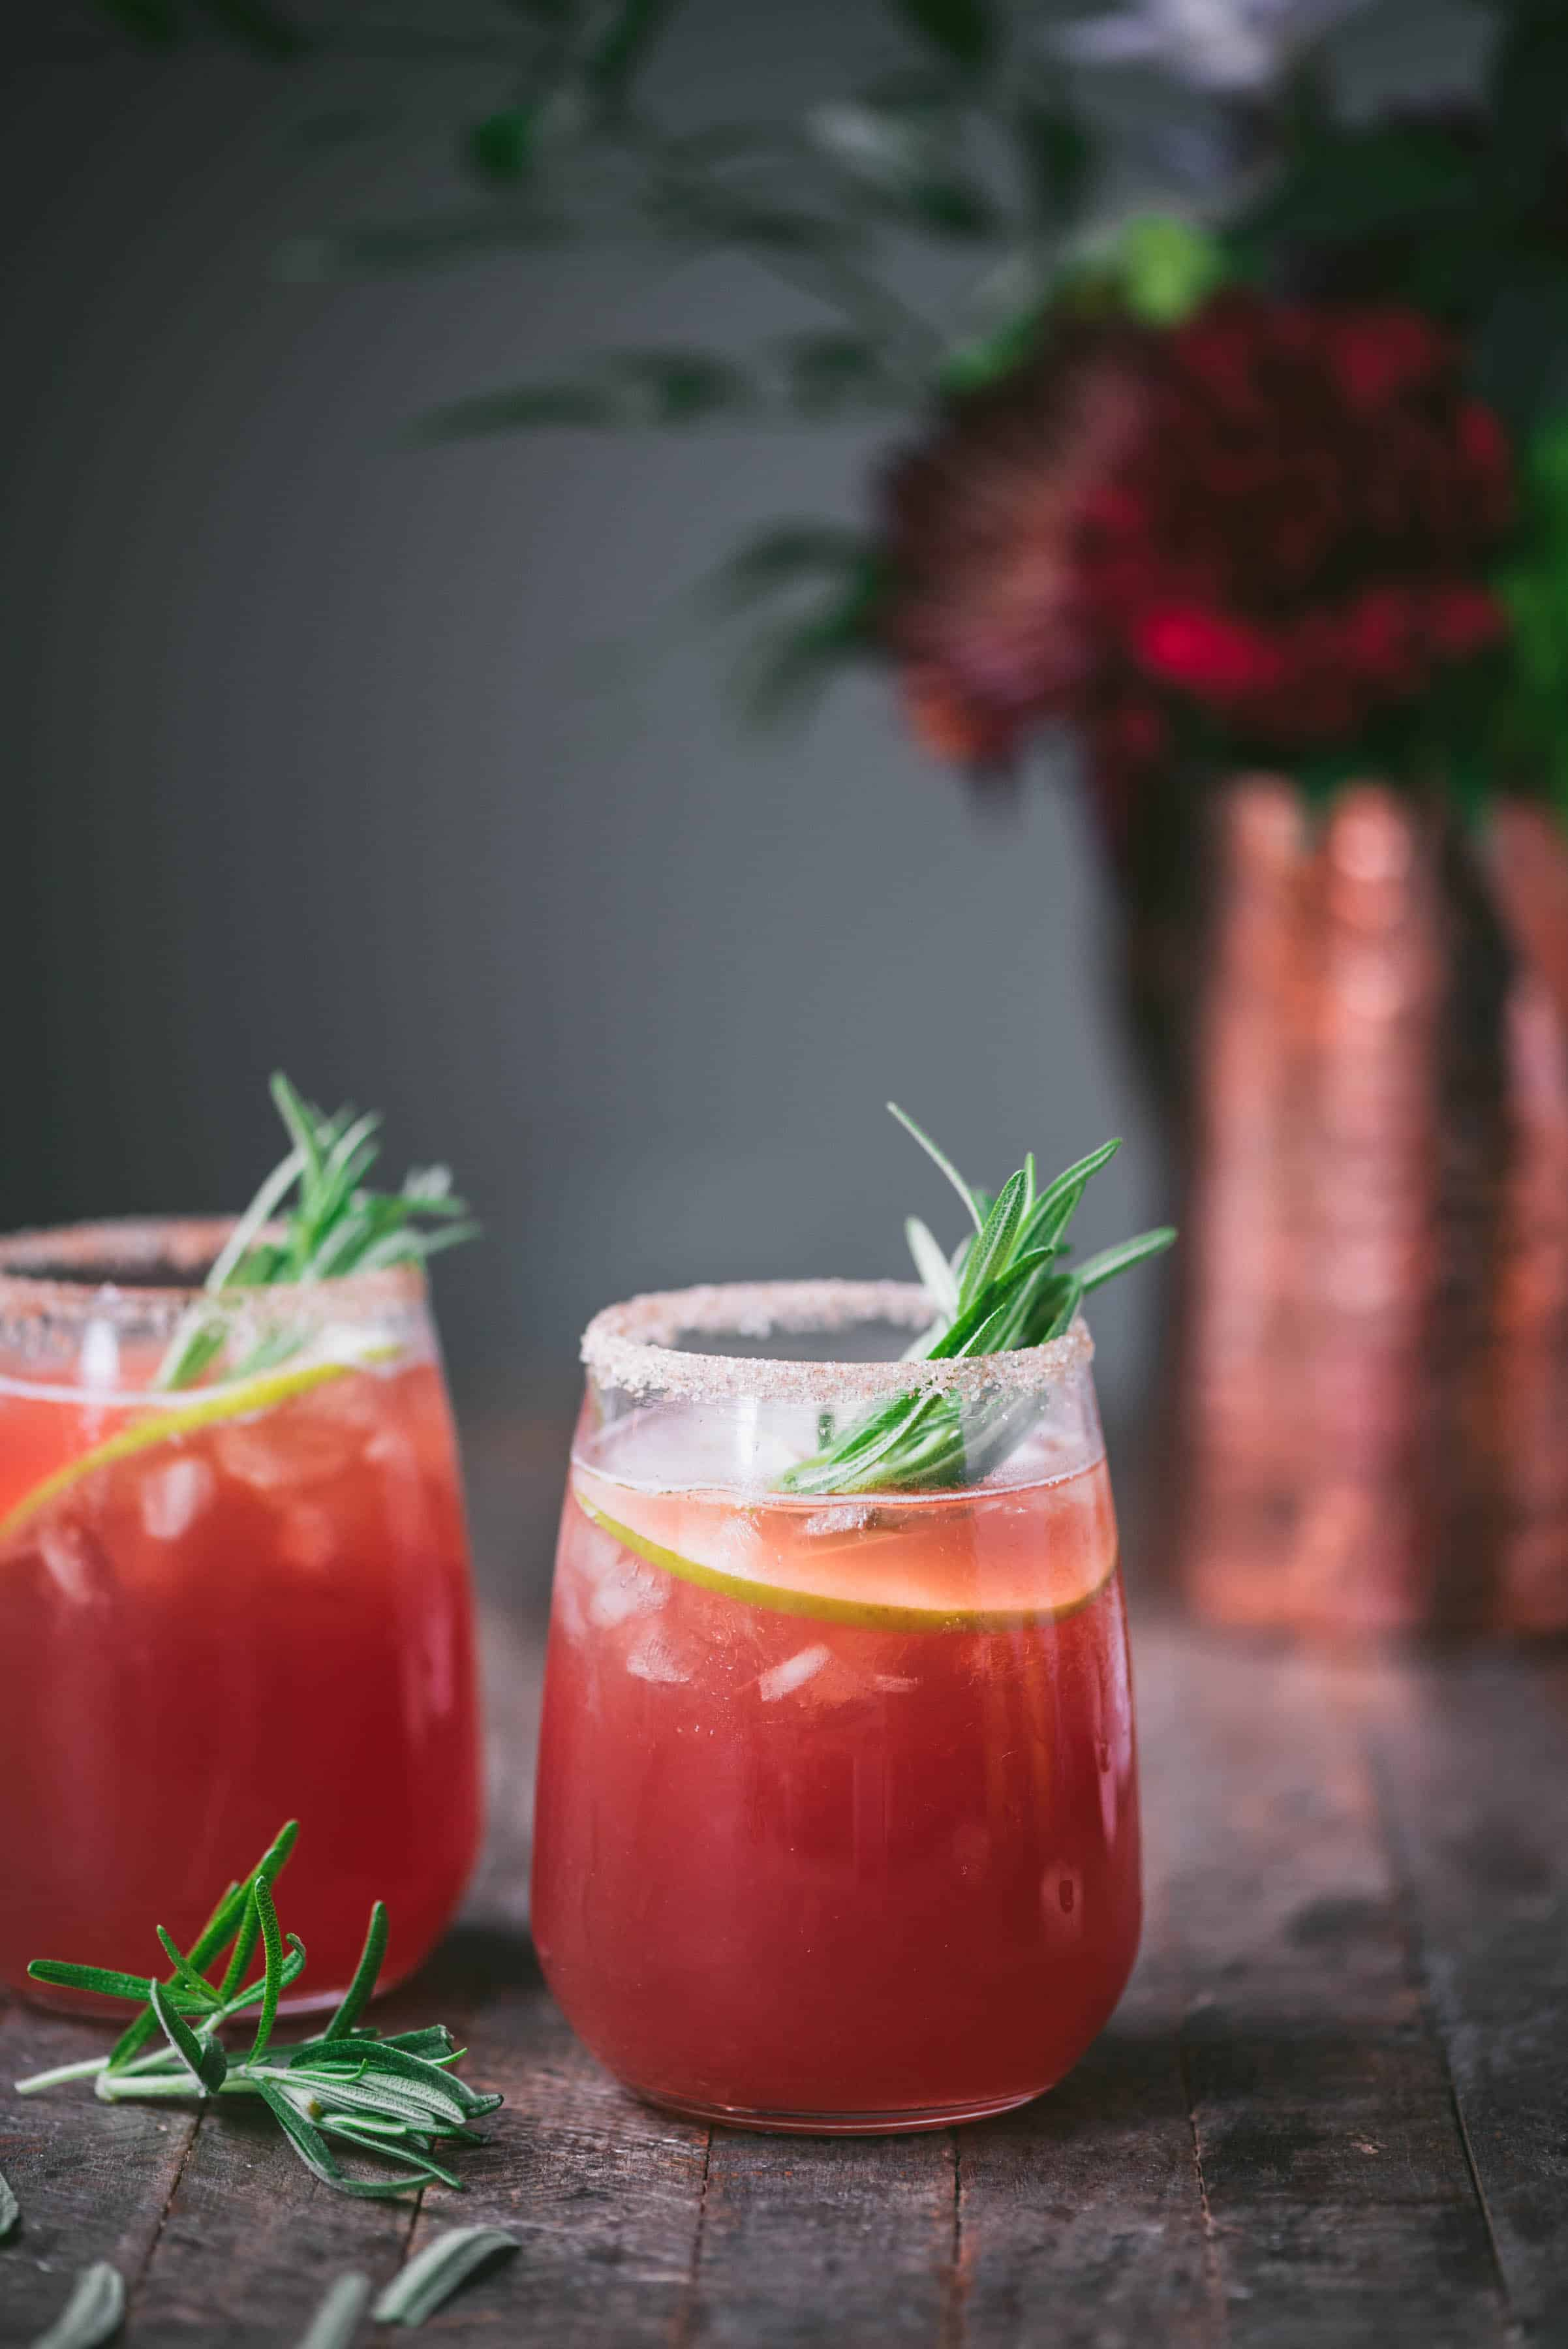 Side view of apple cider cranberry margarita with rosemary and apple garnish on rustic wood background with flowers in copper vase